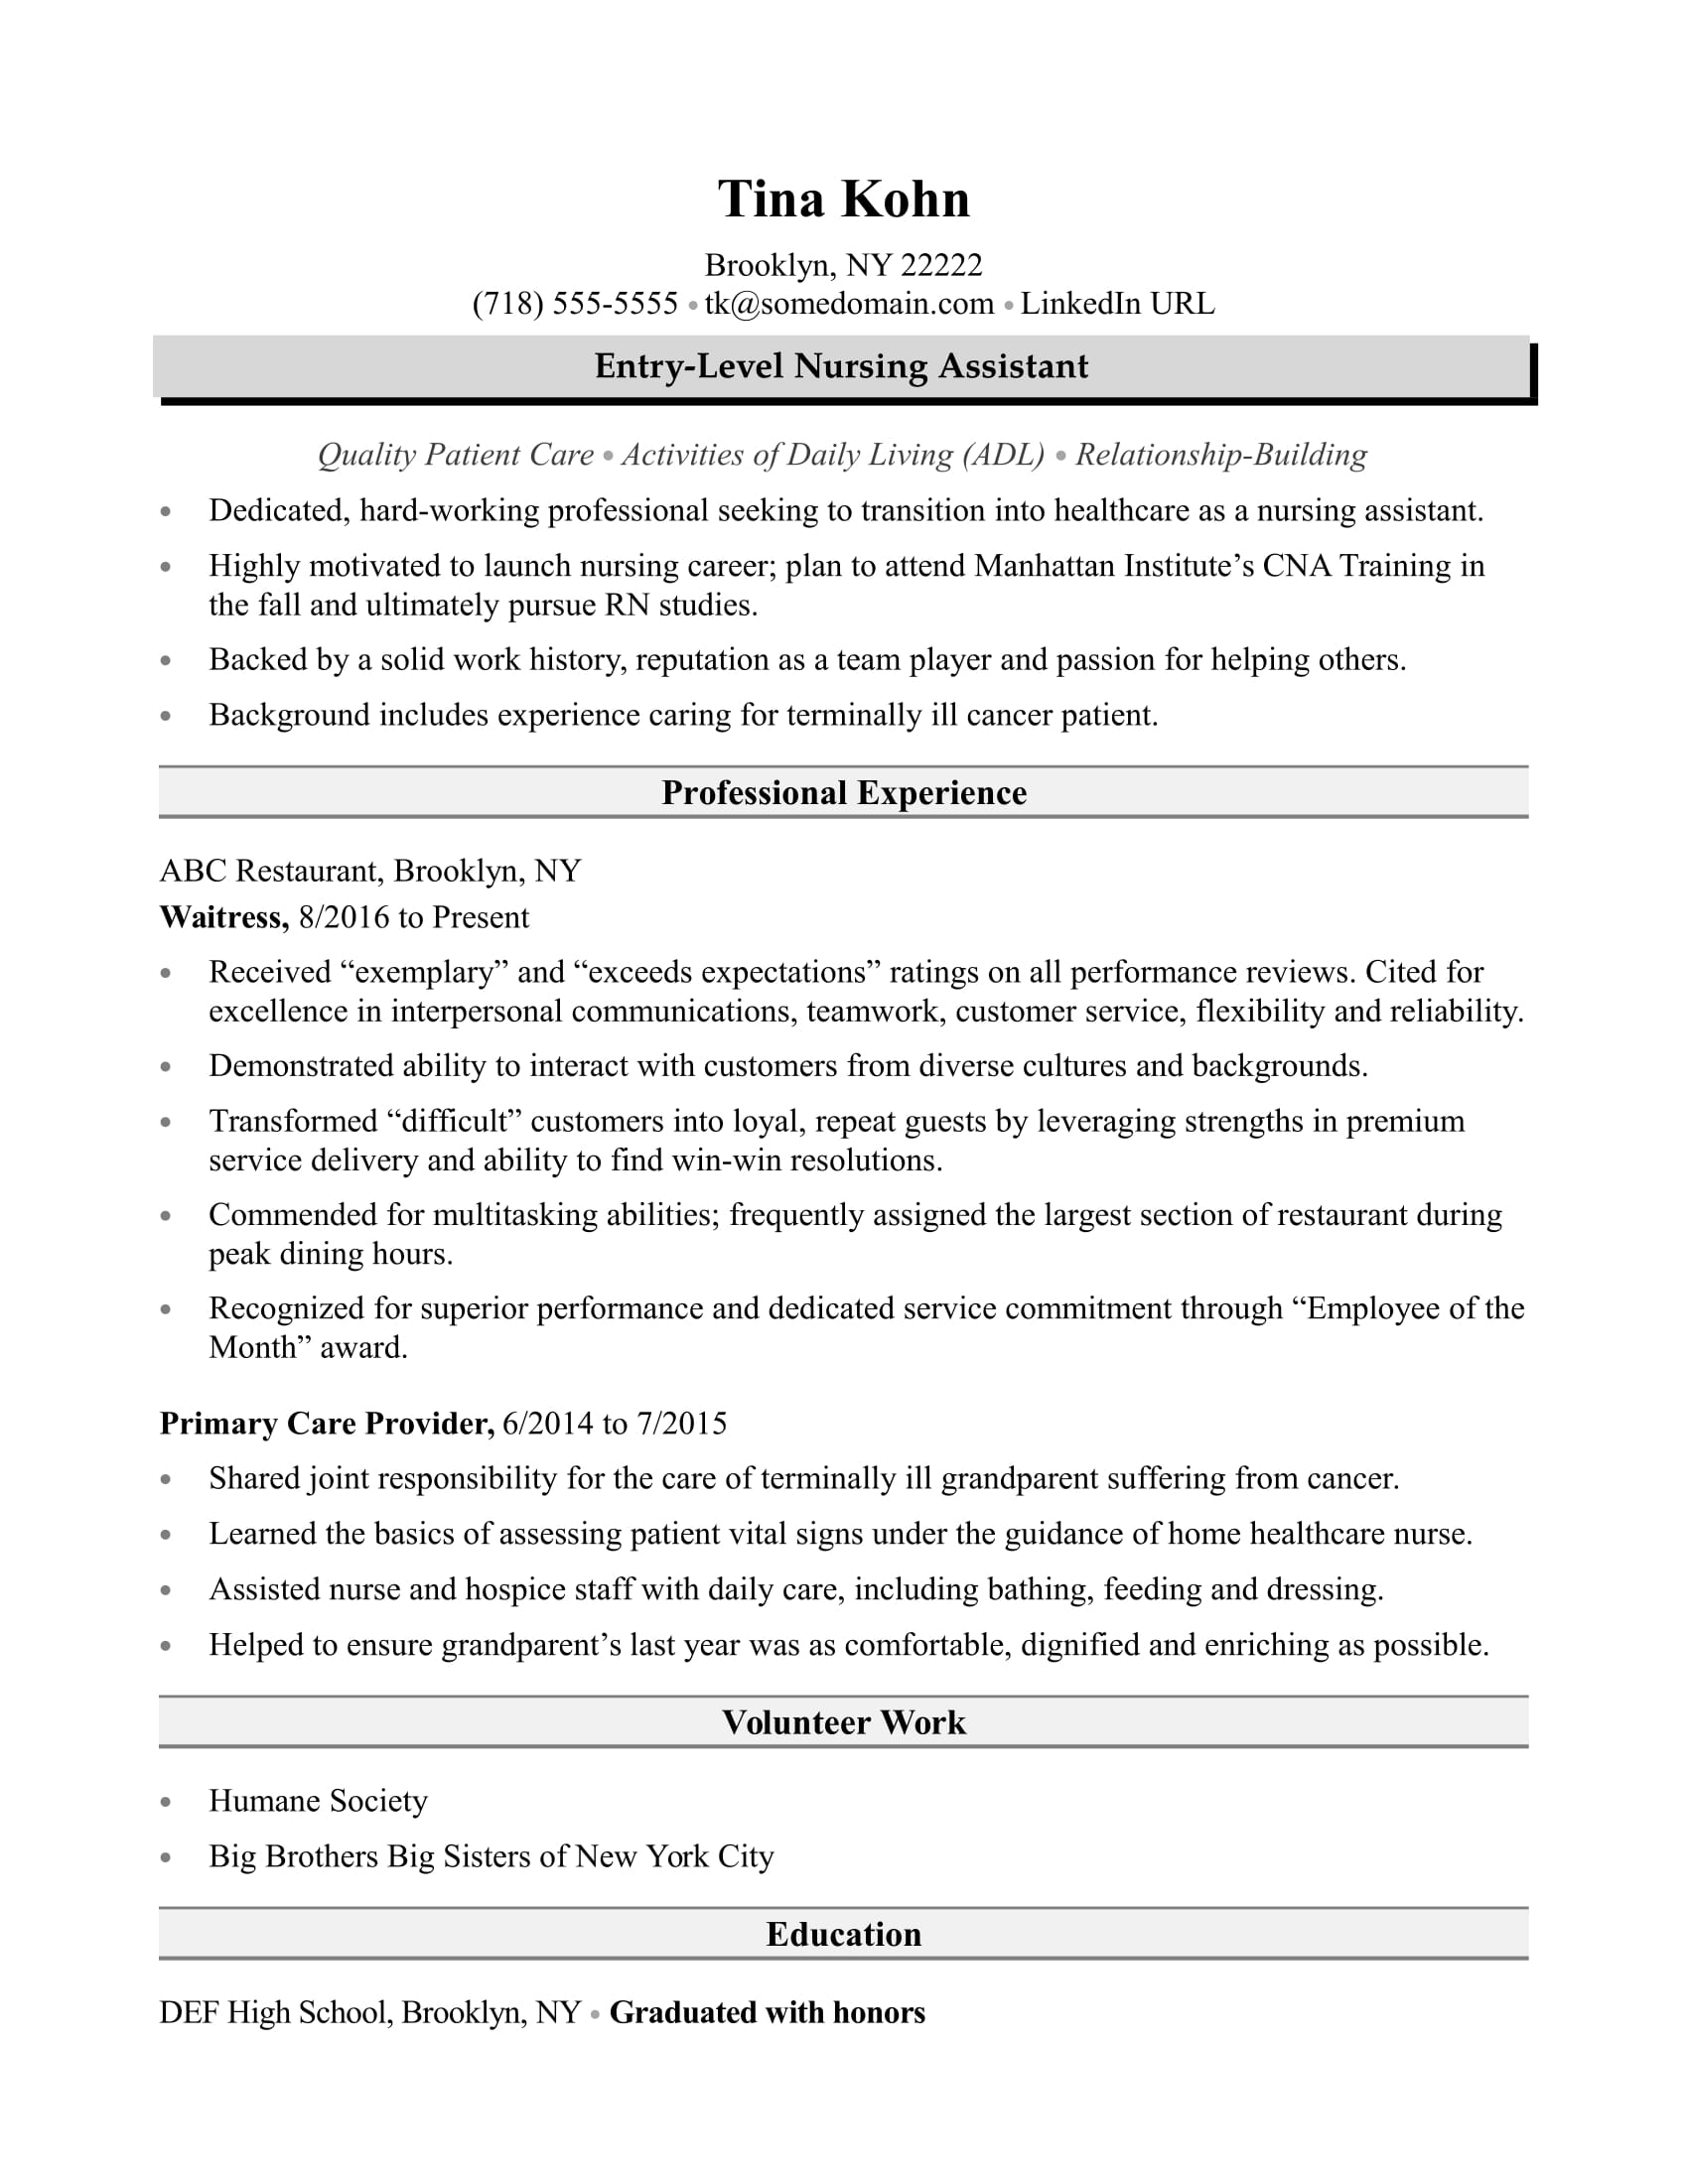 nursing assistant resume sample even with little experience - Resume Examples For Jobs With Little Experience